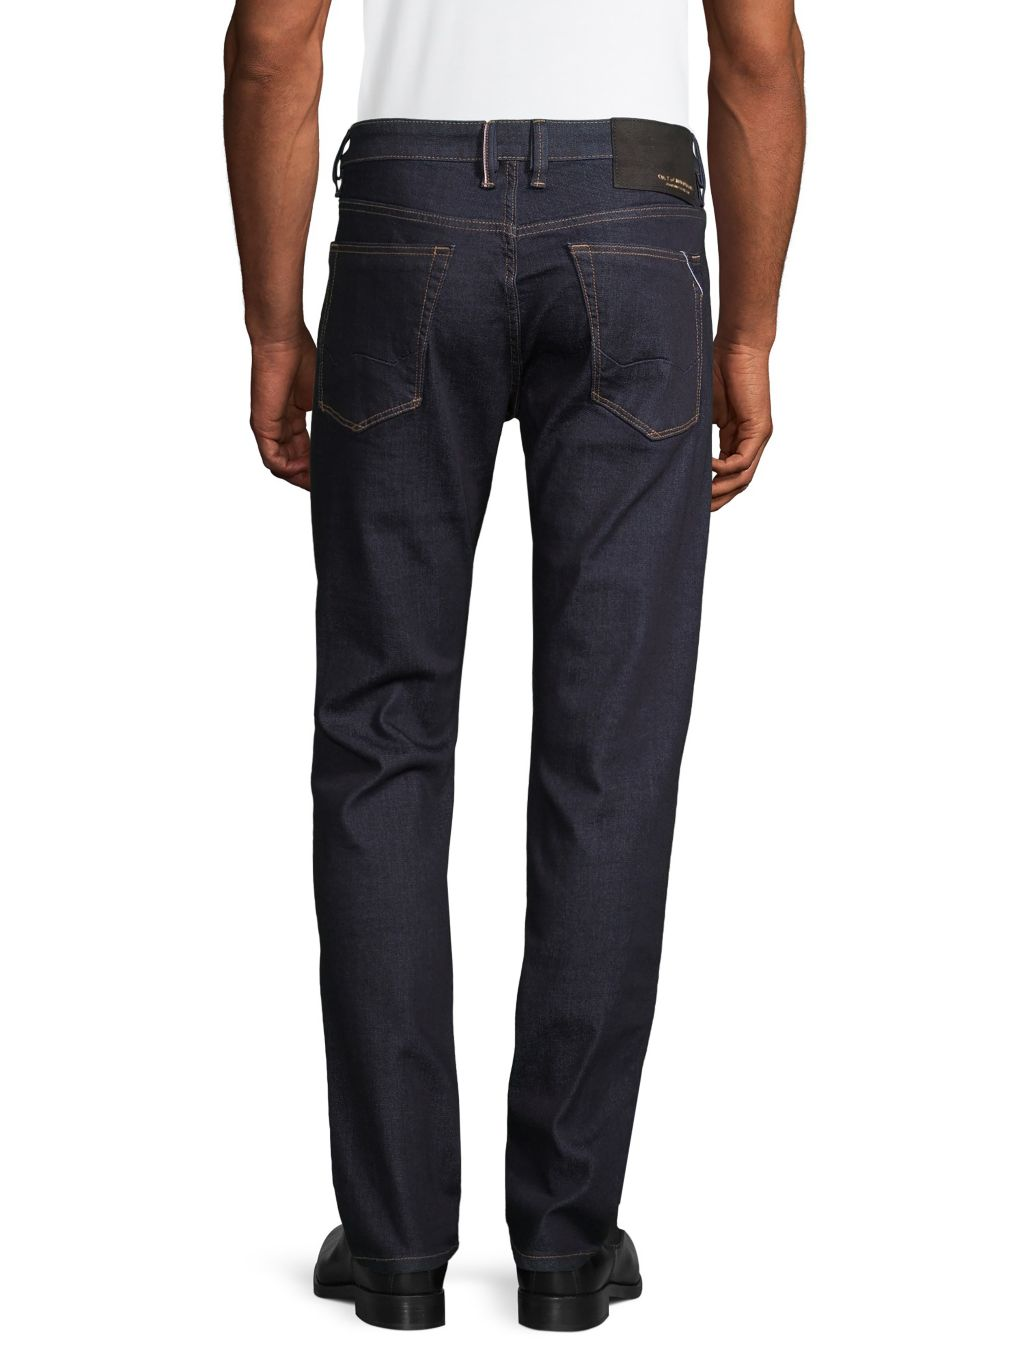 Cult Of Individuality Rocker Slim-Fit Jeans